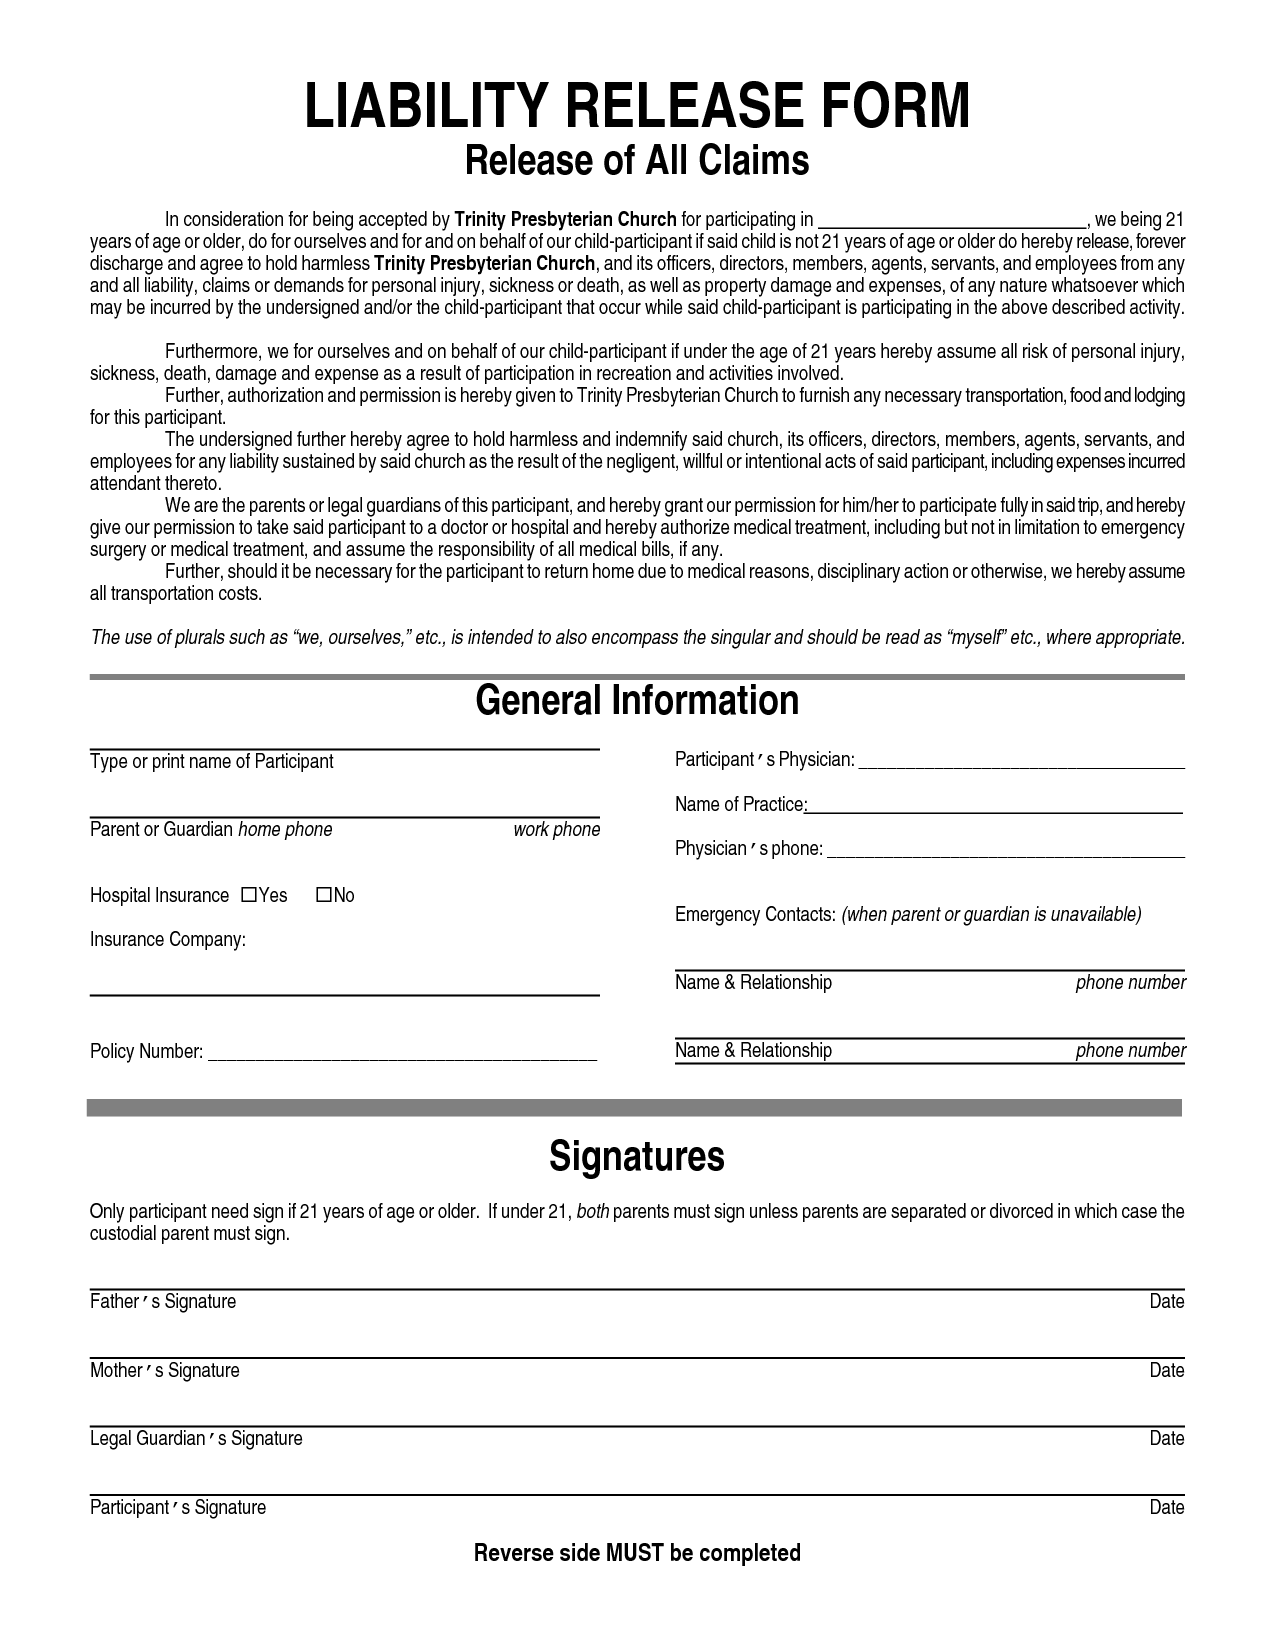 General Liability Waiver Form | General Liability Release Form ...